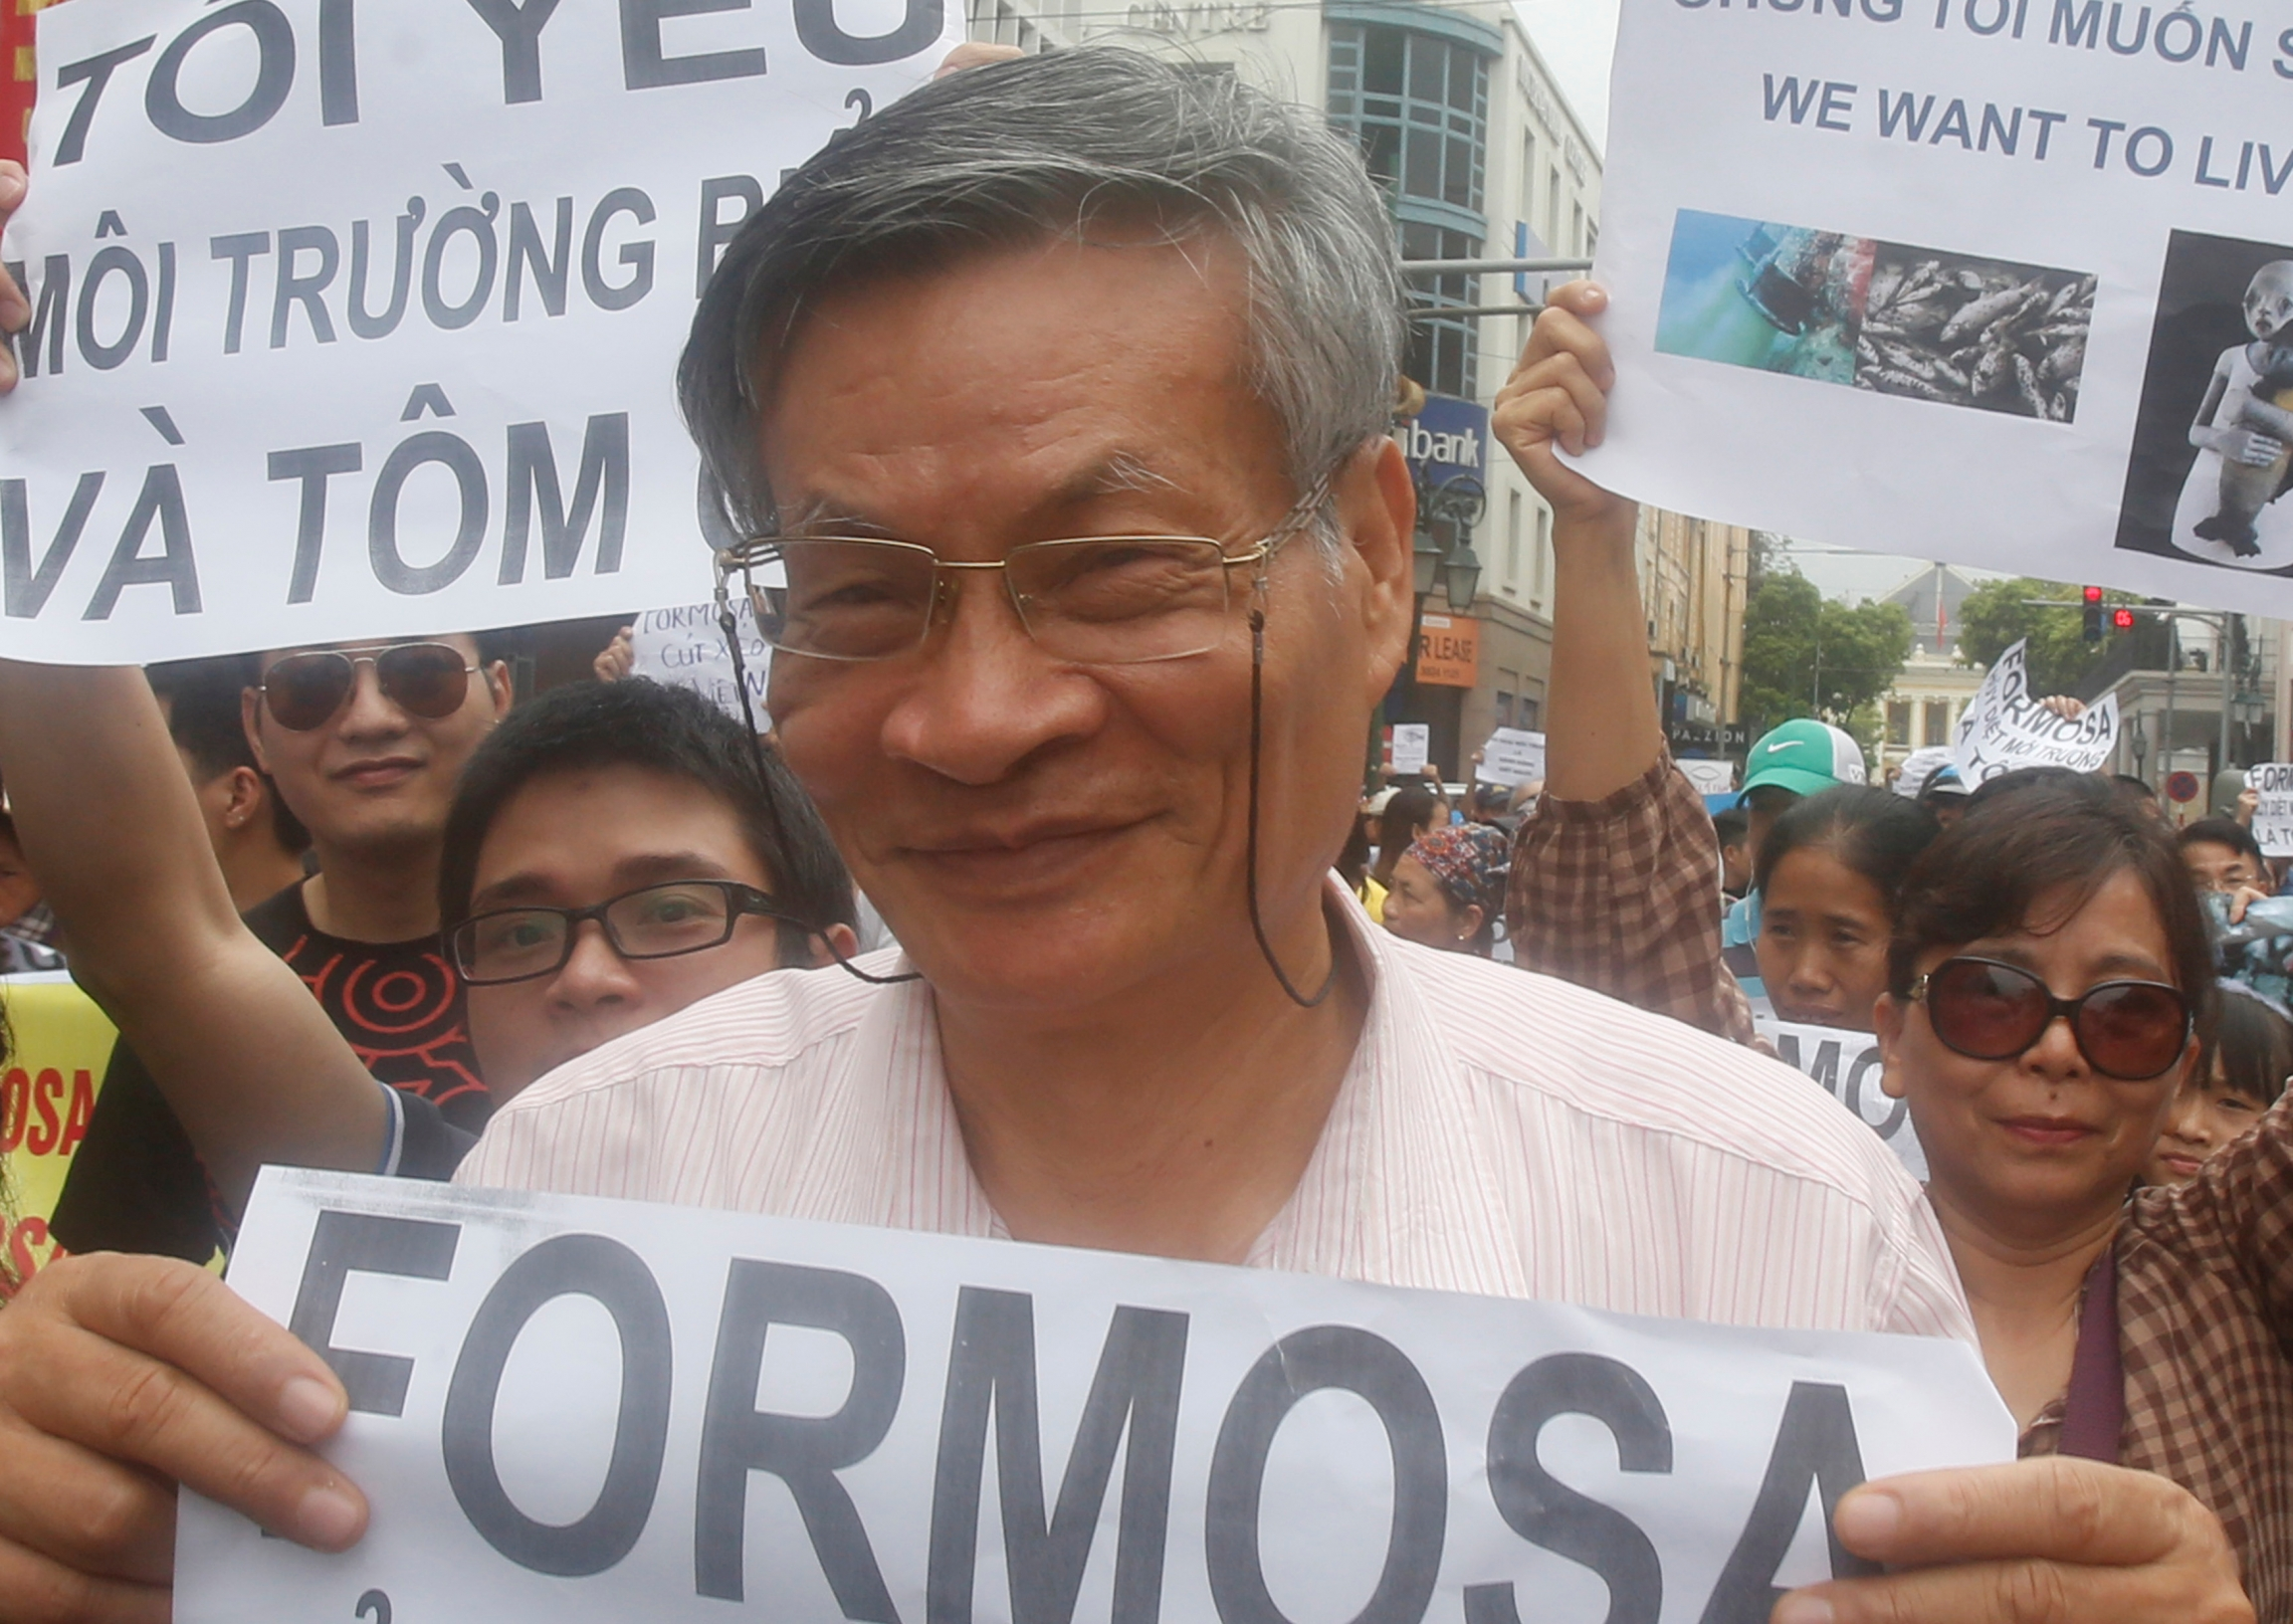 A man holds a protest sign in a large crowd against Formosa Plastics